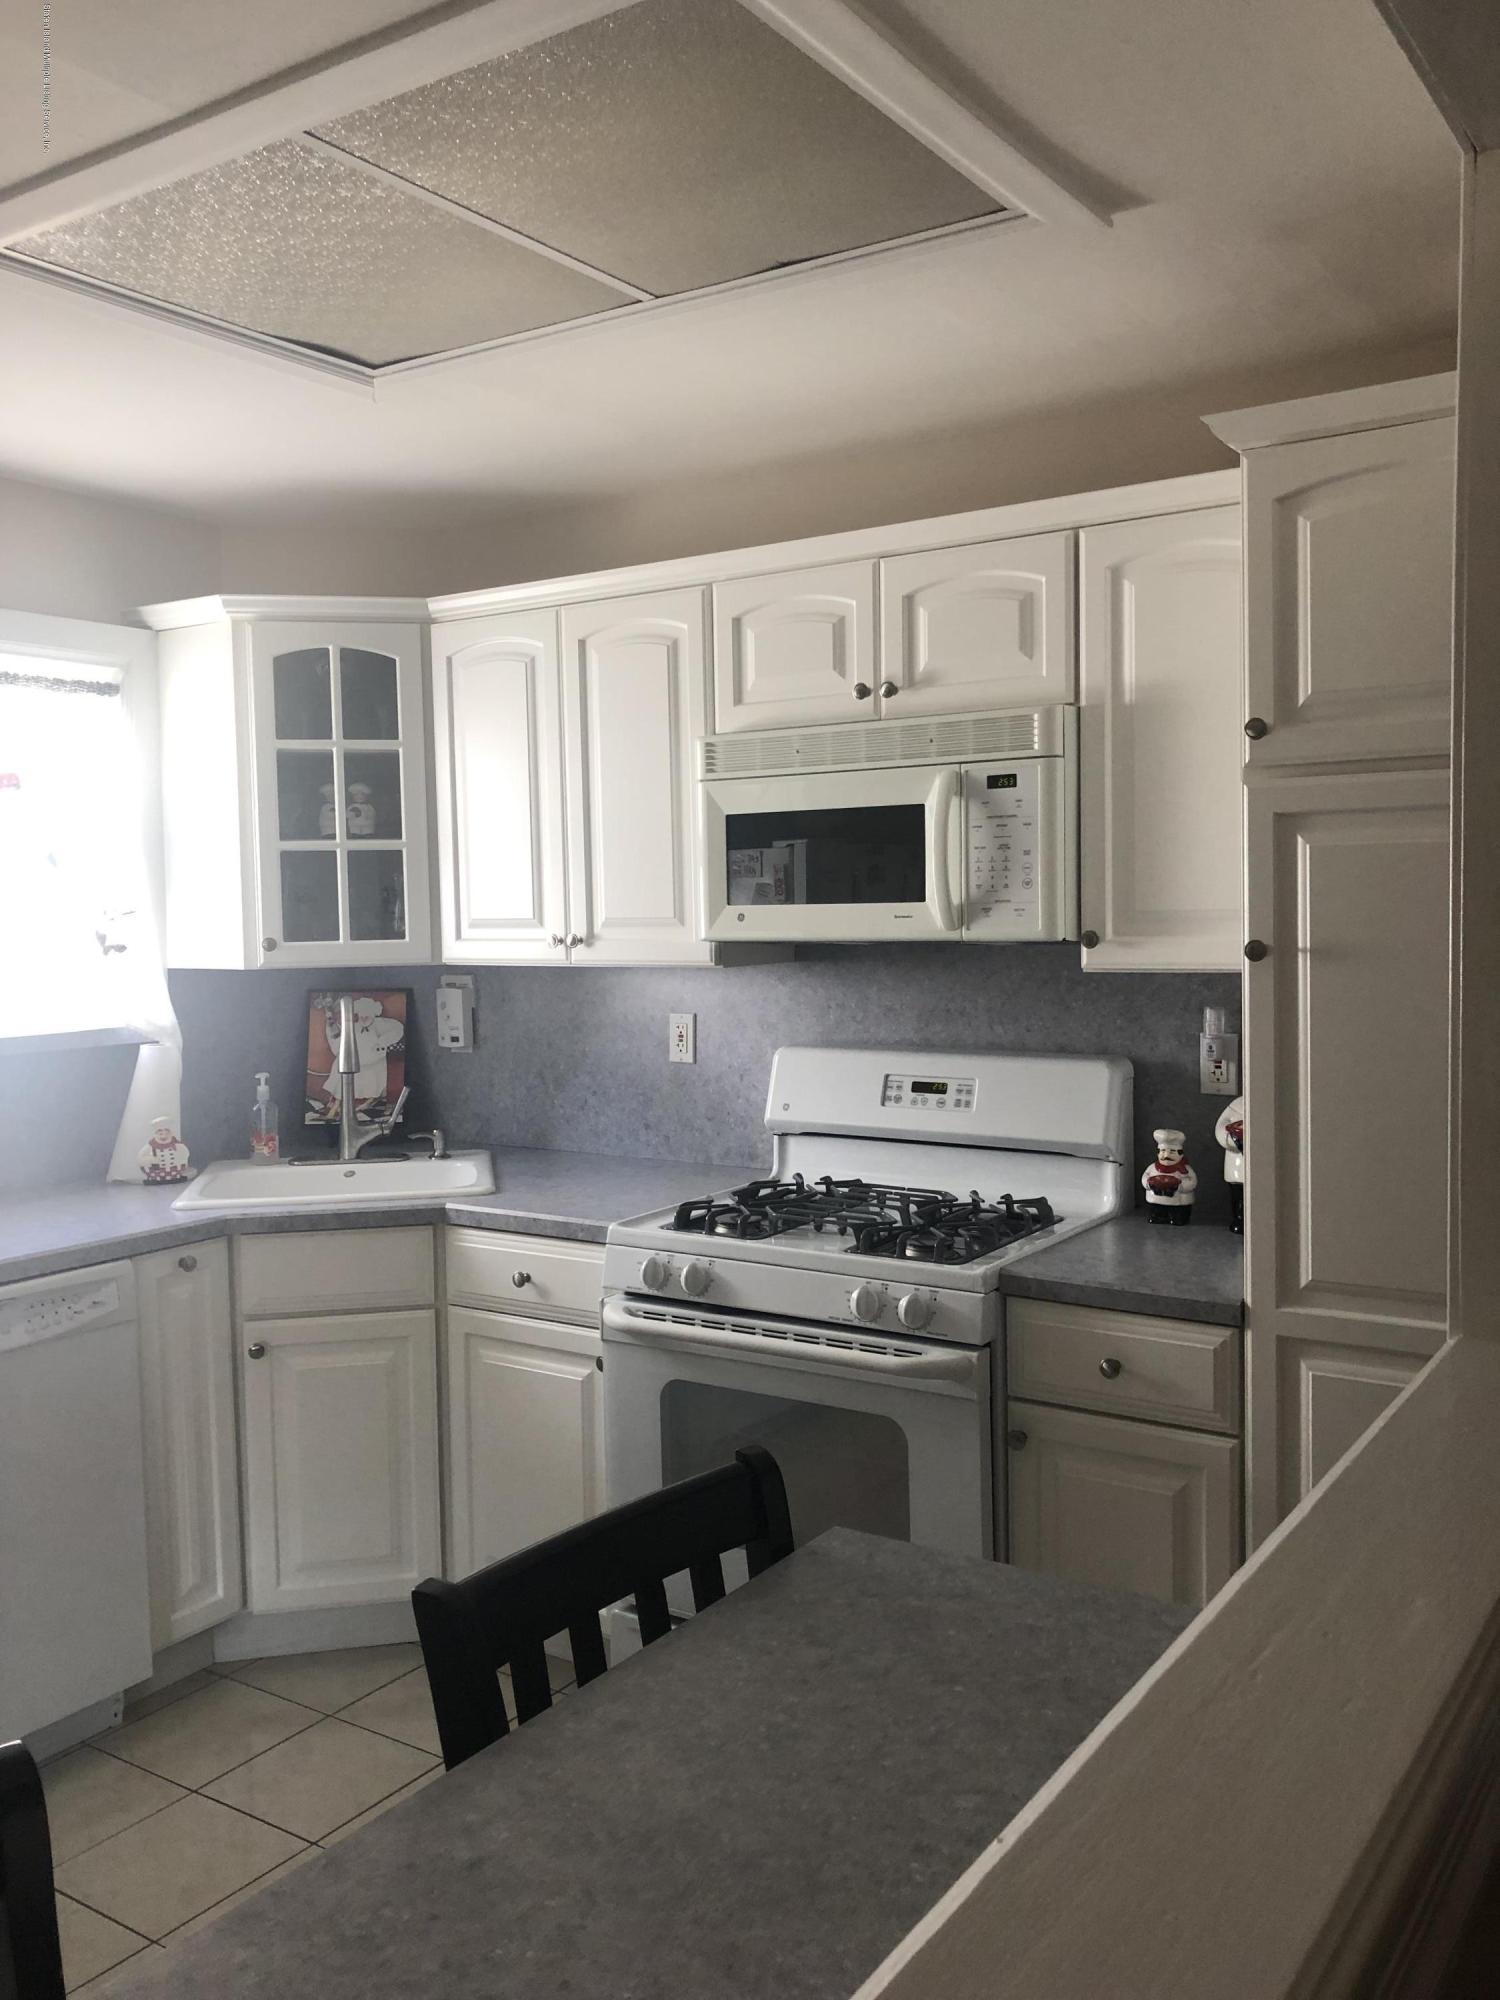 Single Family - Semi-Attached 93 Middle Loop Road  Staten Island, NY 10308, MLS-1131446-11